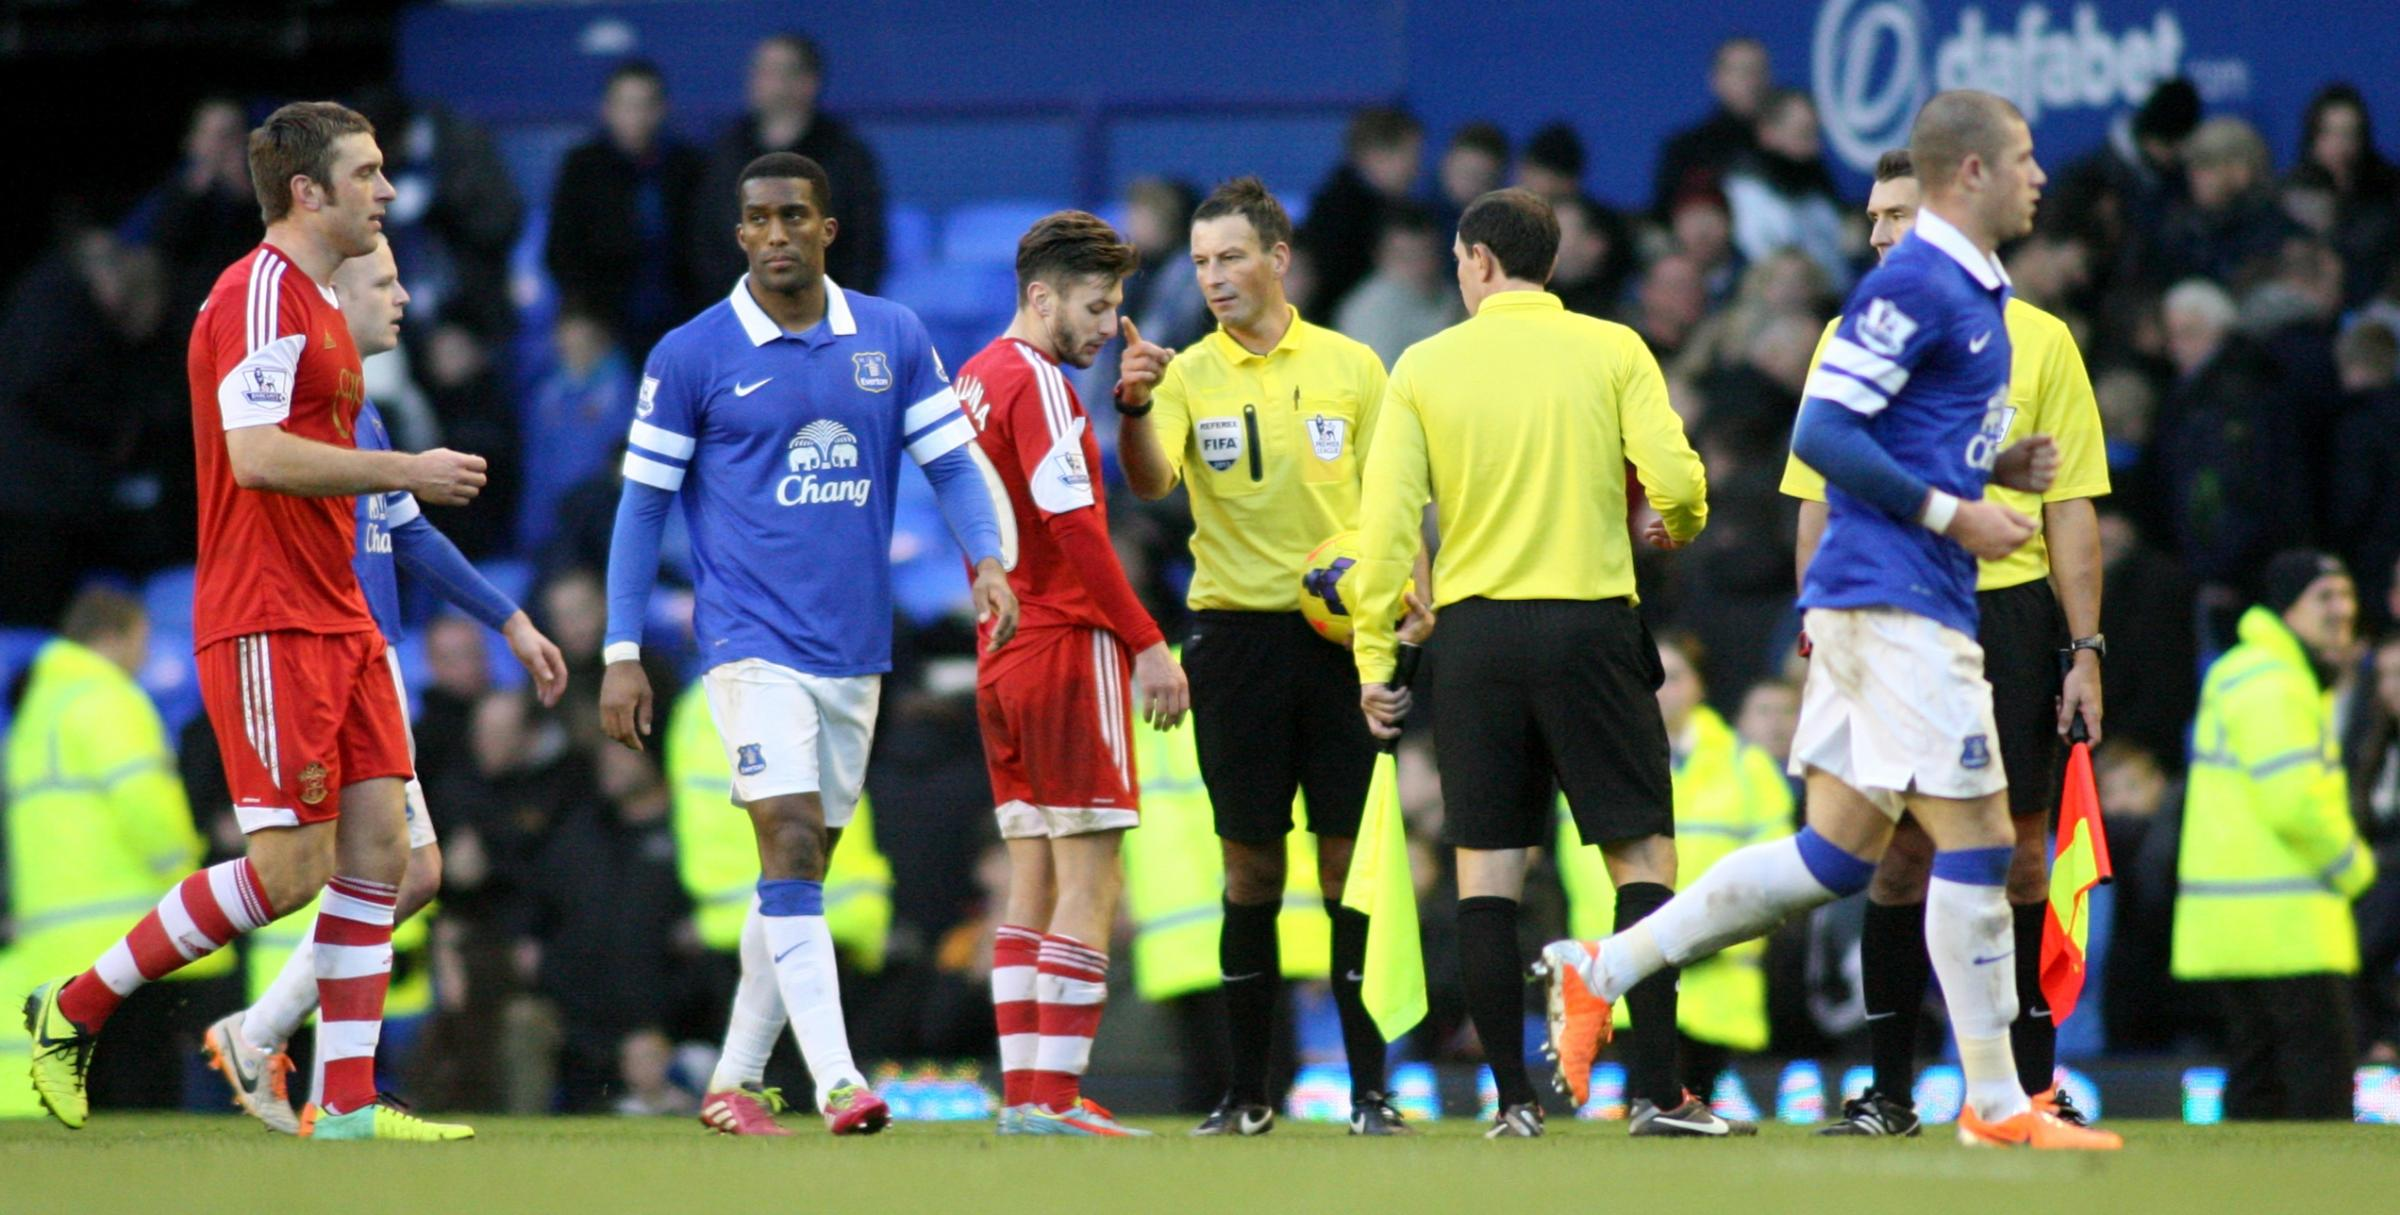 Mark Clattenburg speaks to Adam Lallana at the end of the game at Goodison Park